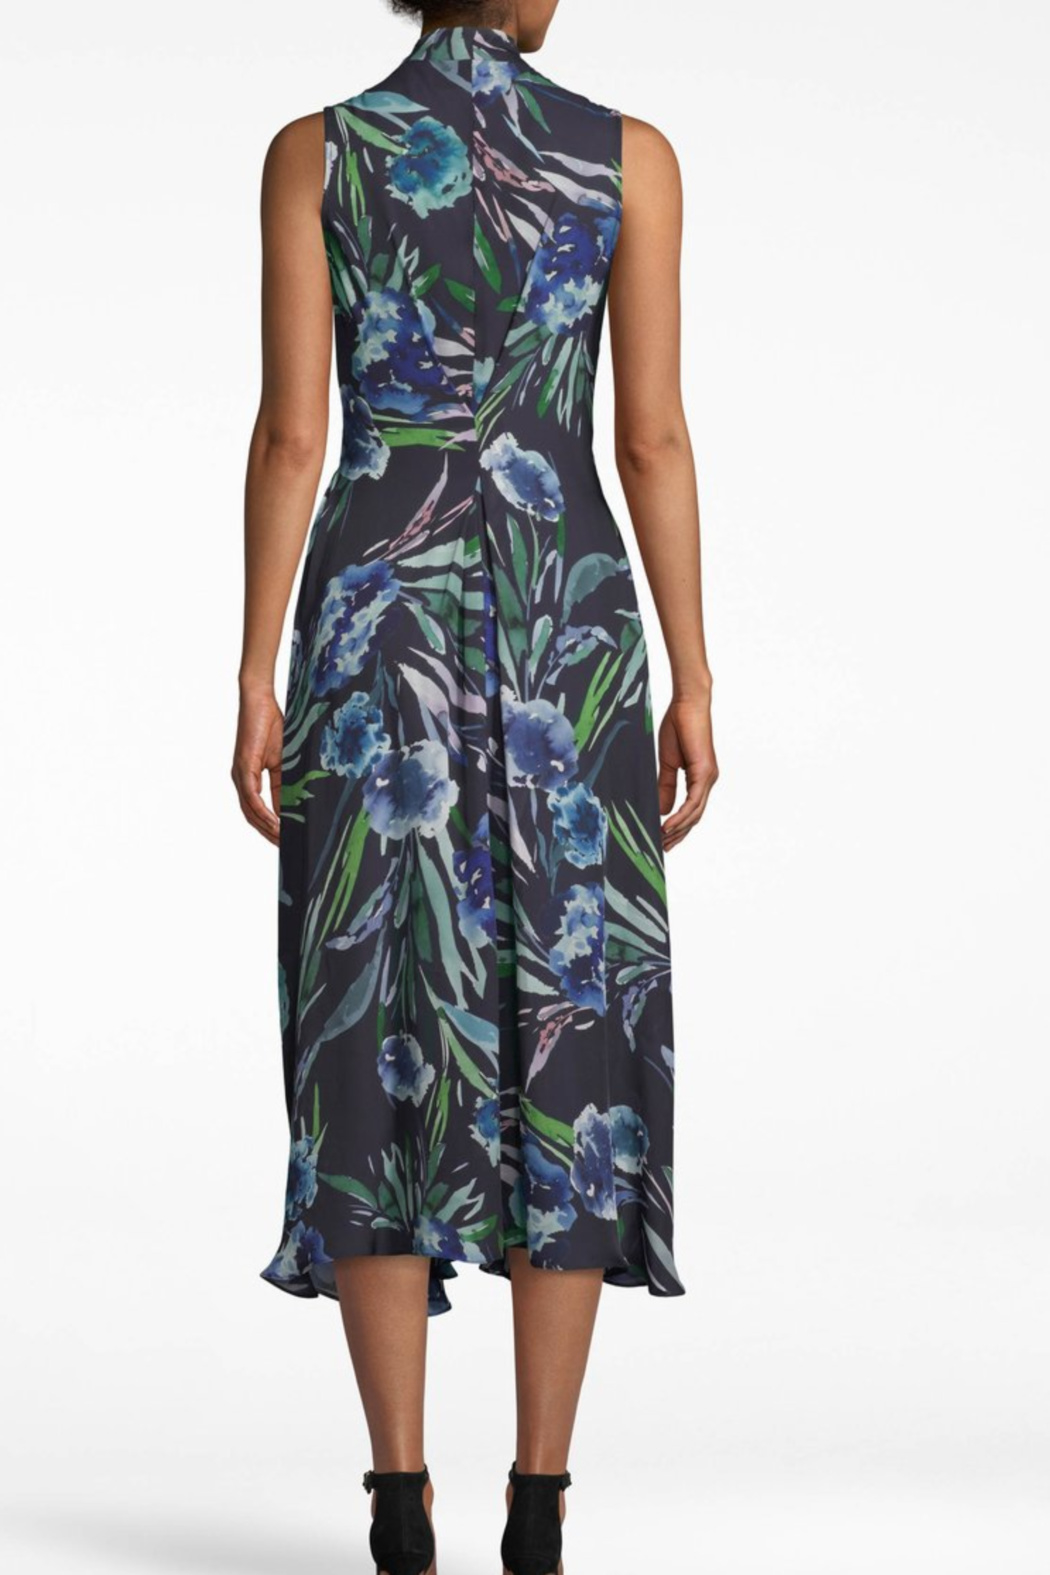 Nicole Miller Blue Mirage Dress - Side Cropped Image